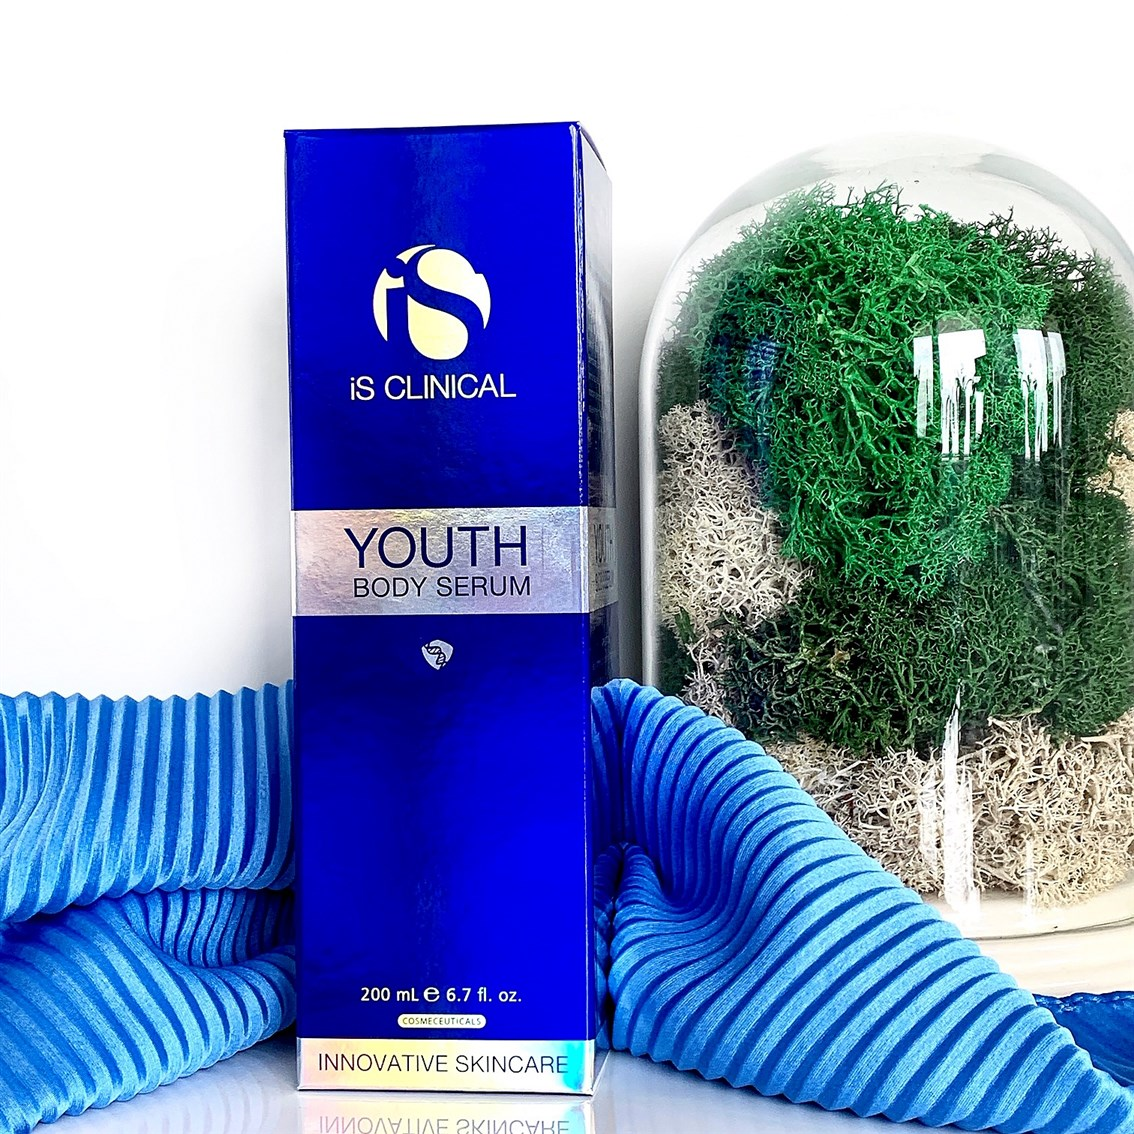 Is Clinical Youth Body Serum recenzja